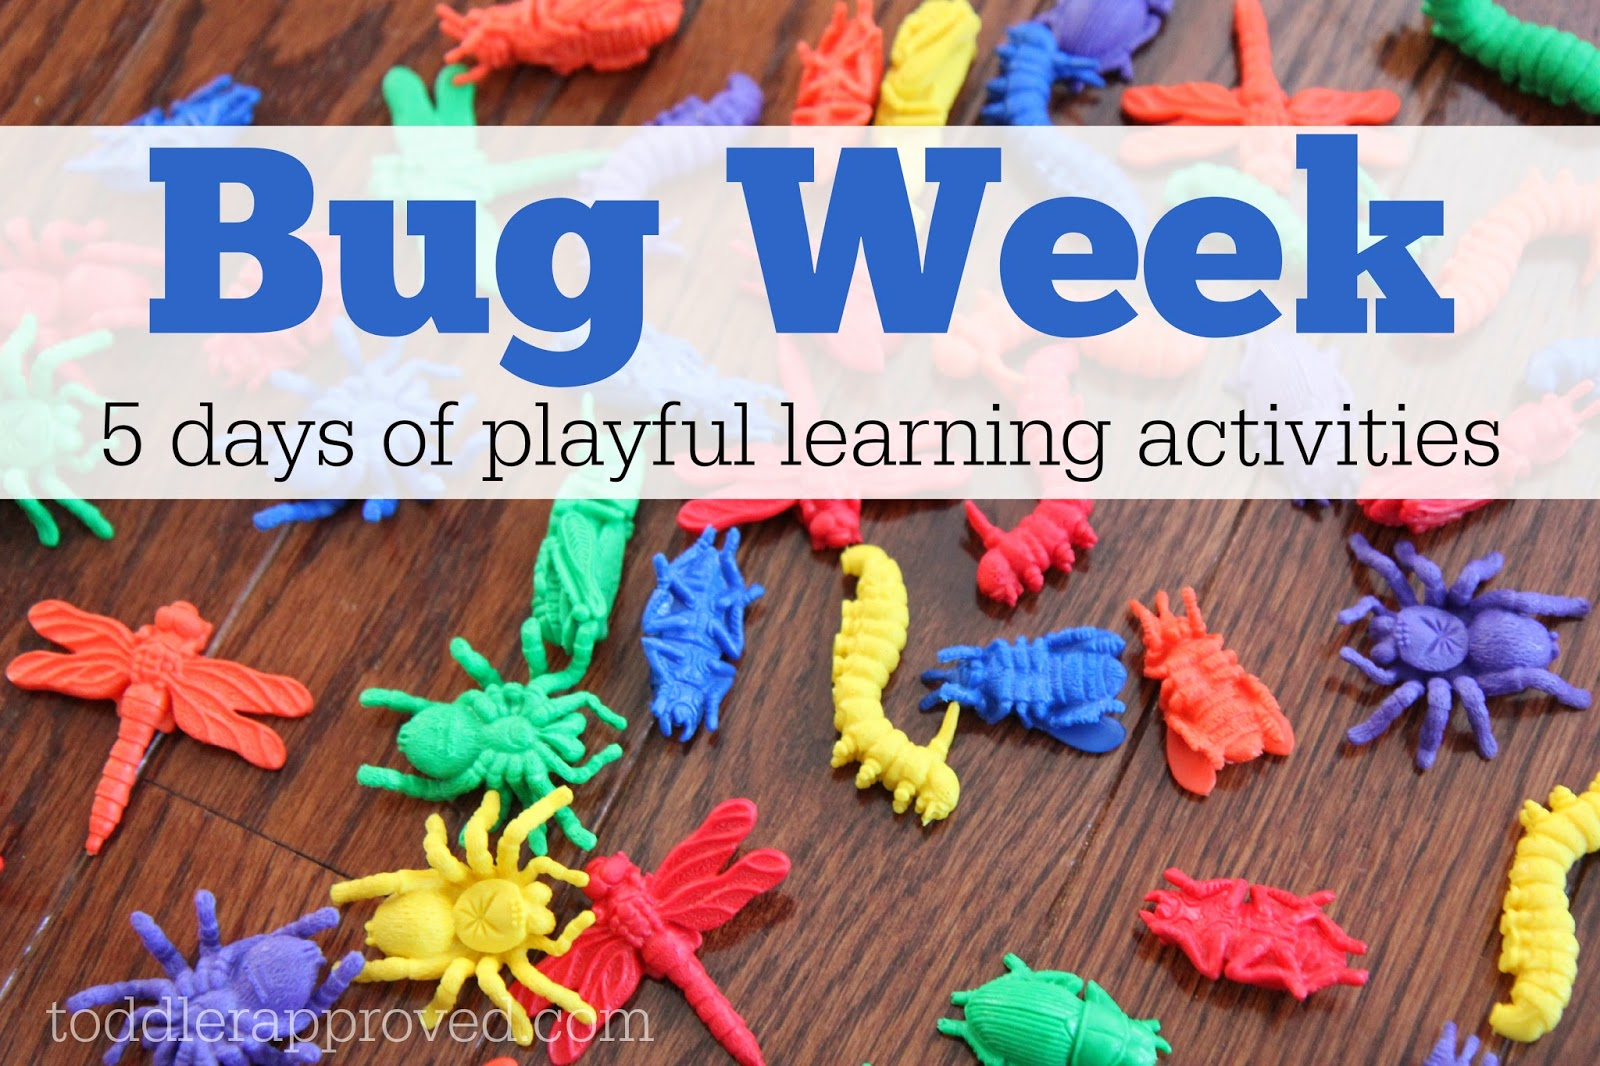 Toddler Approved Bug Week Playful Learning Activities